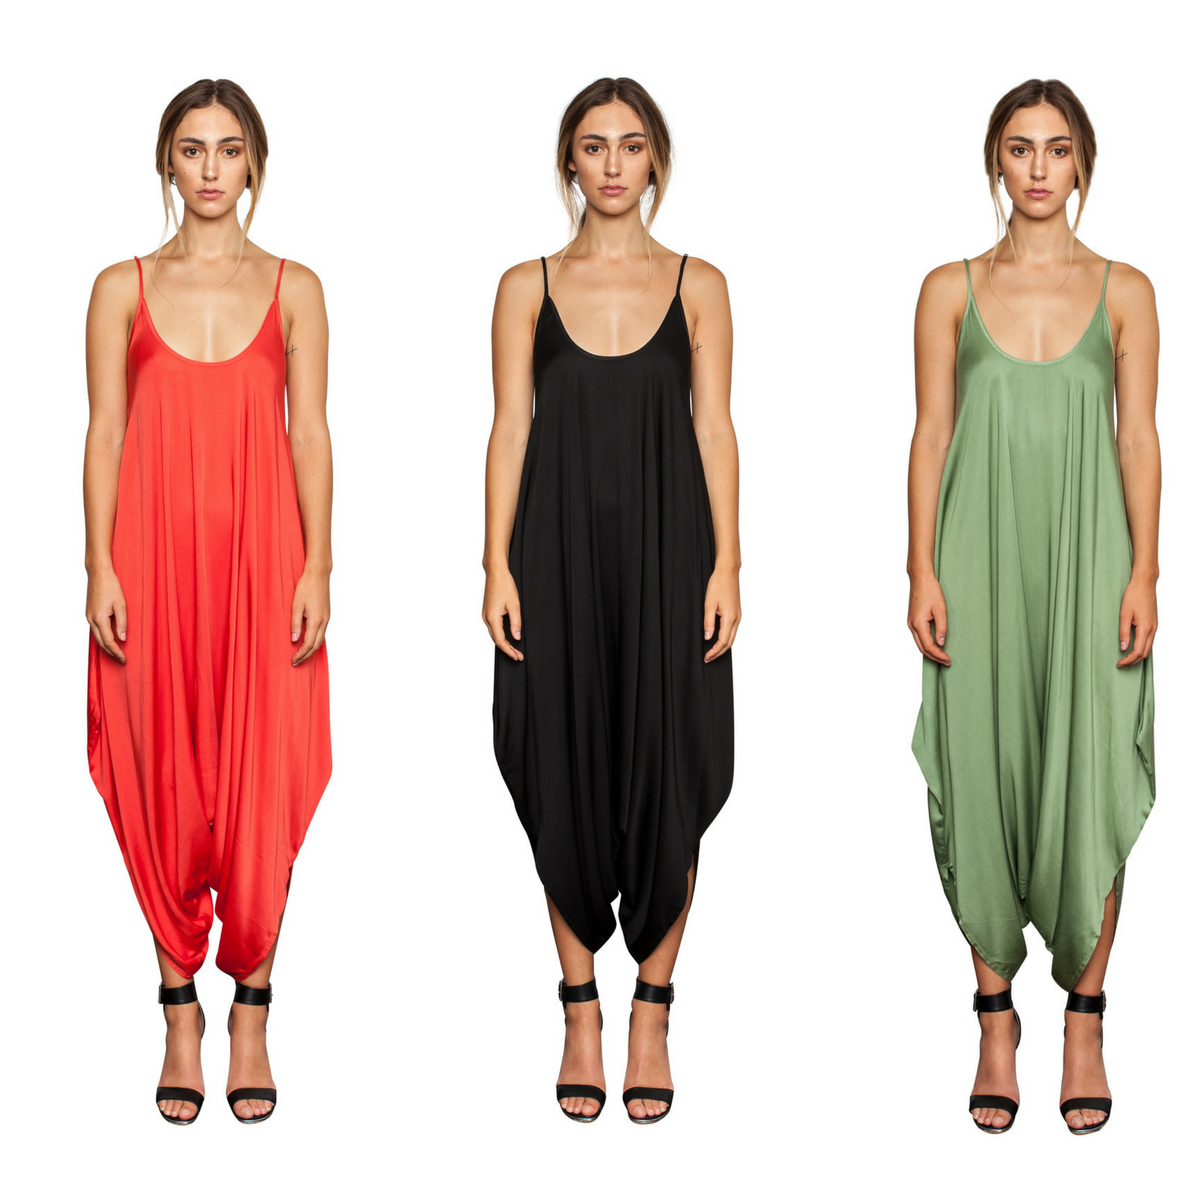 Our bamboo maxi one is super comfortable to wear